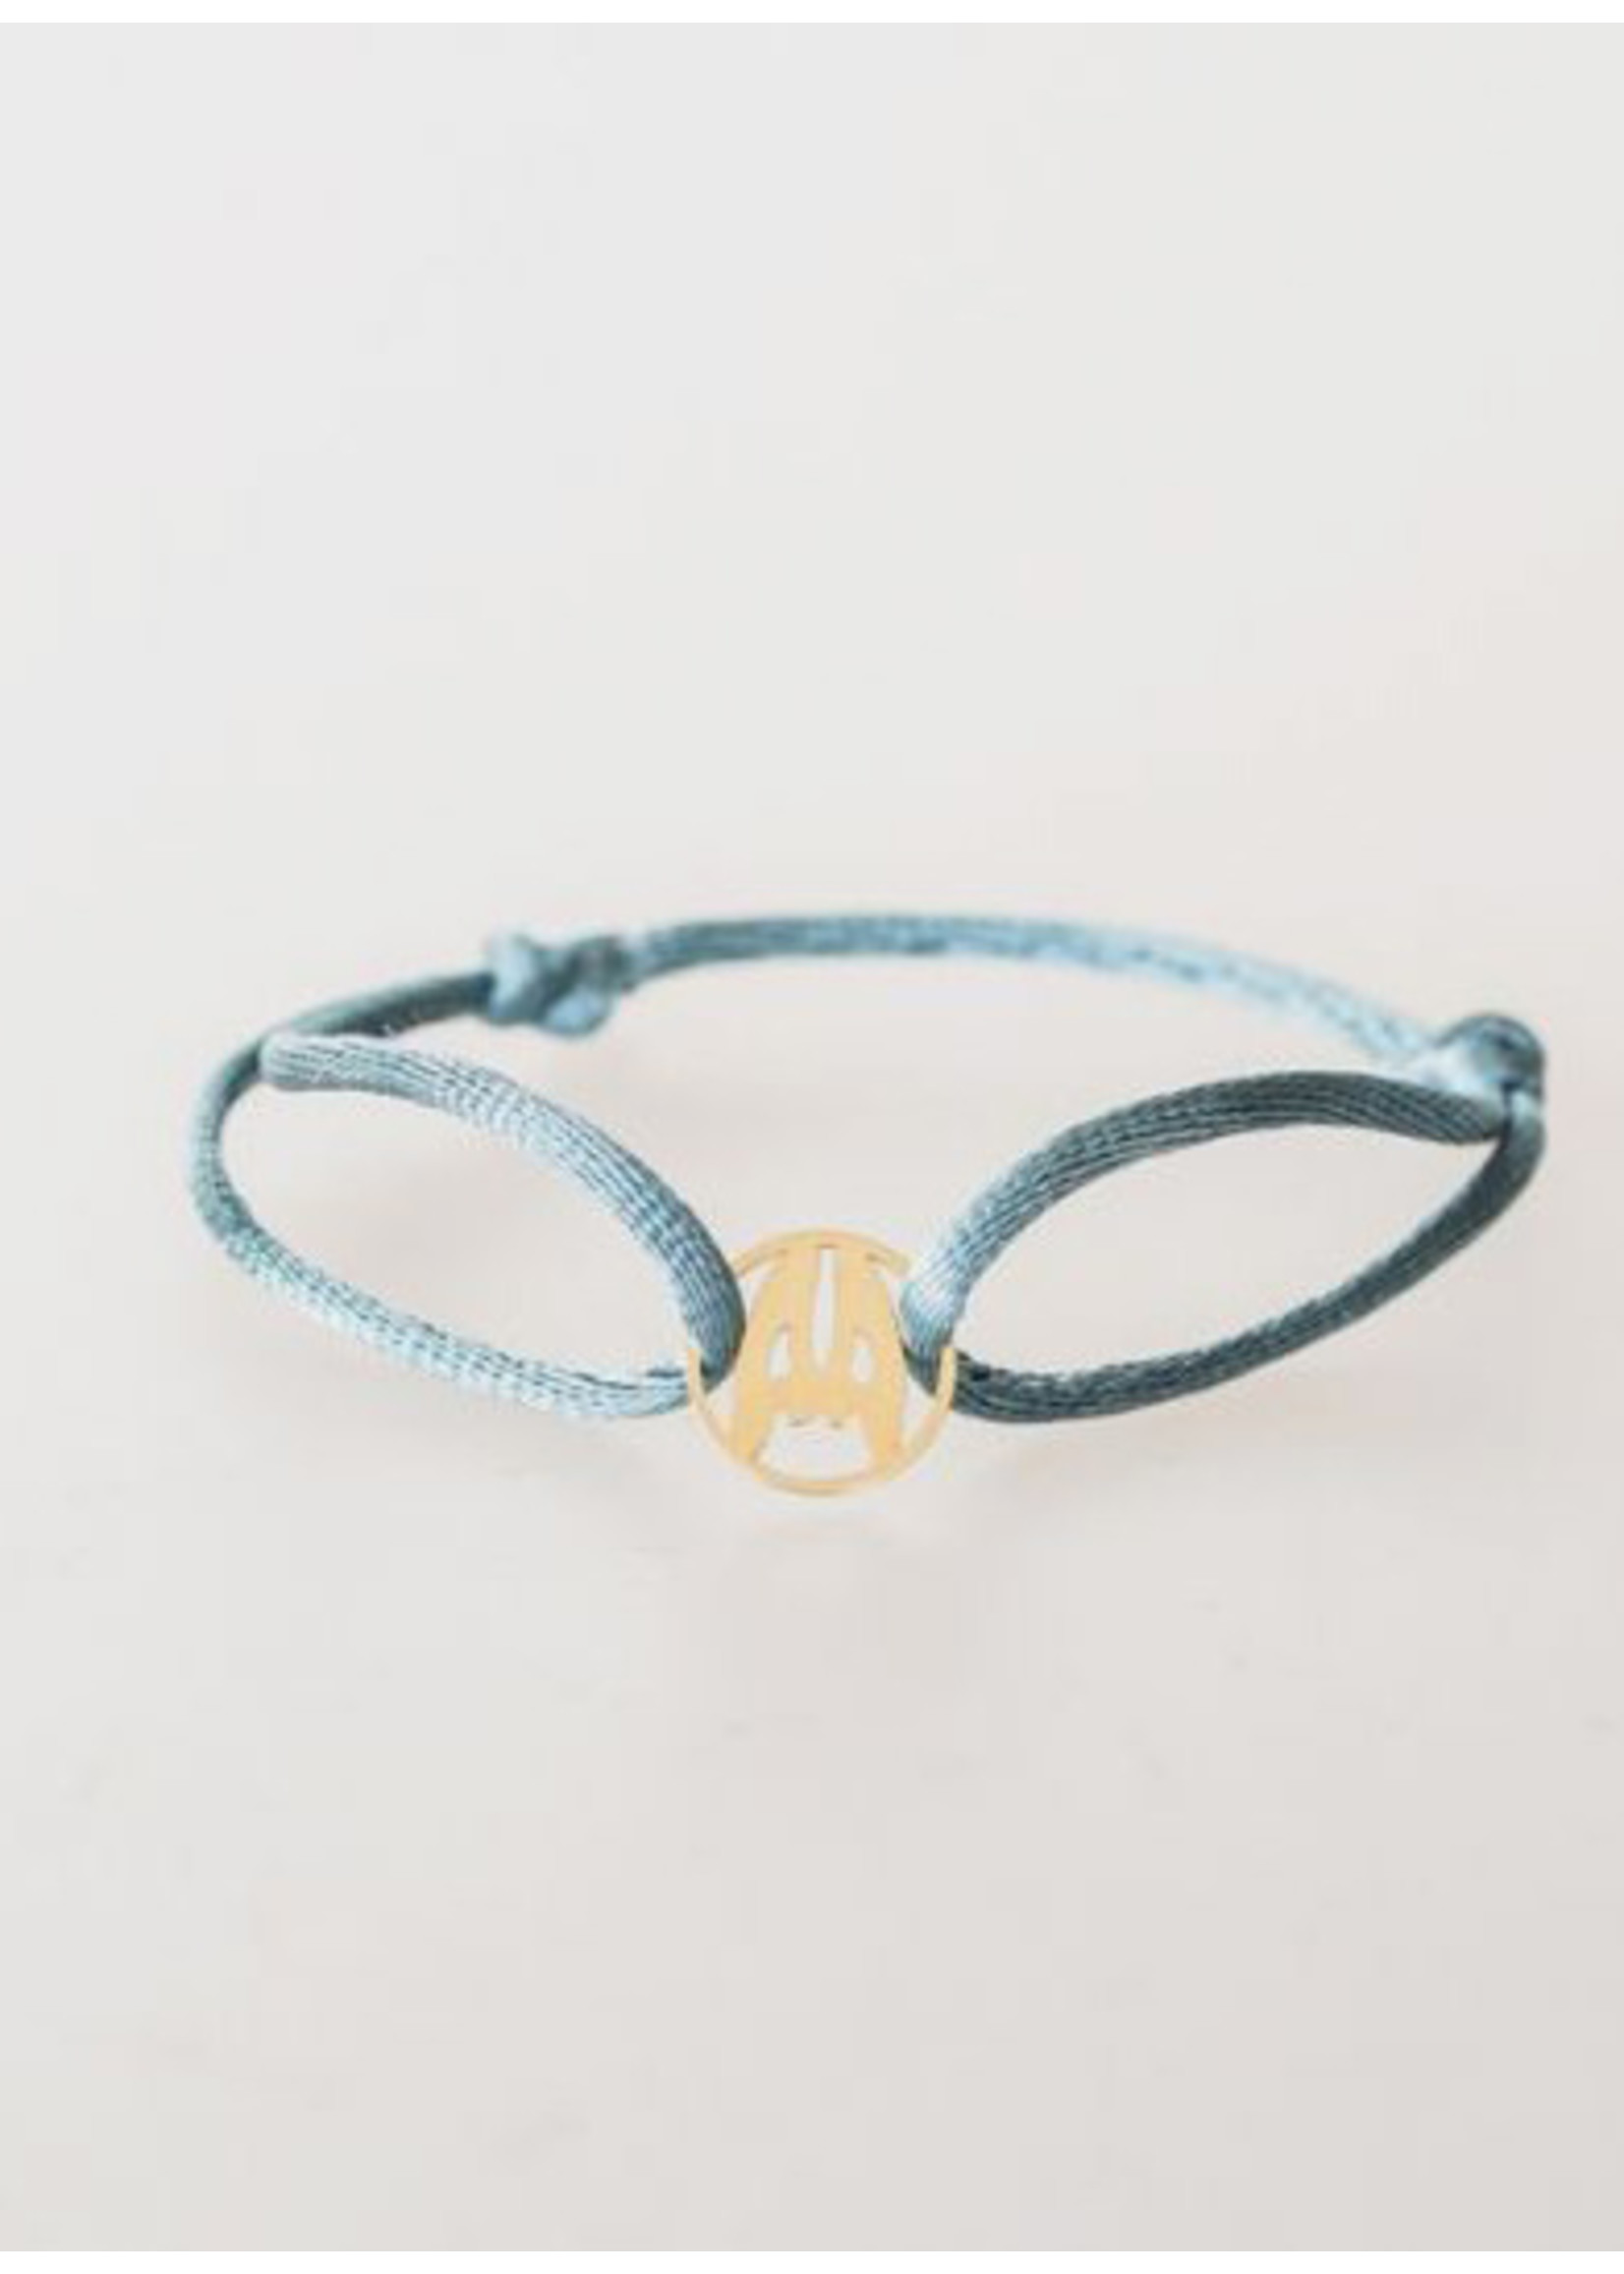 Just Franky Stichting Taai bracelet